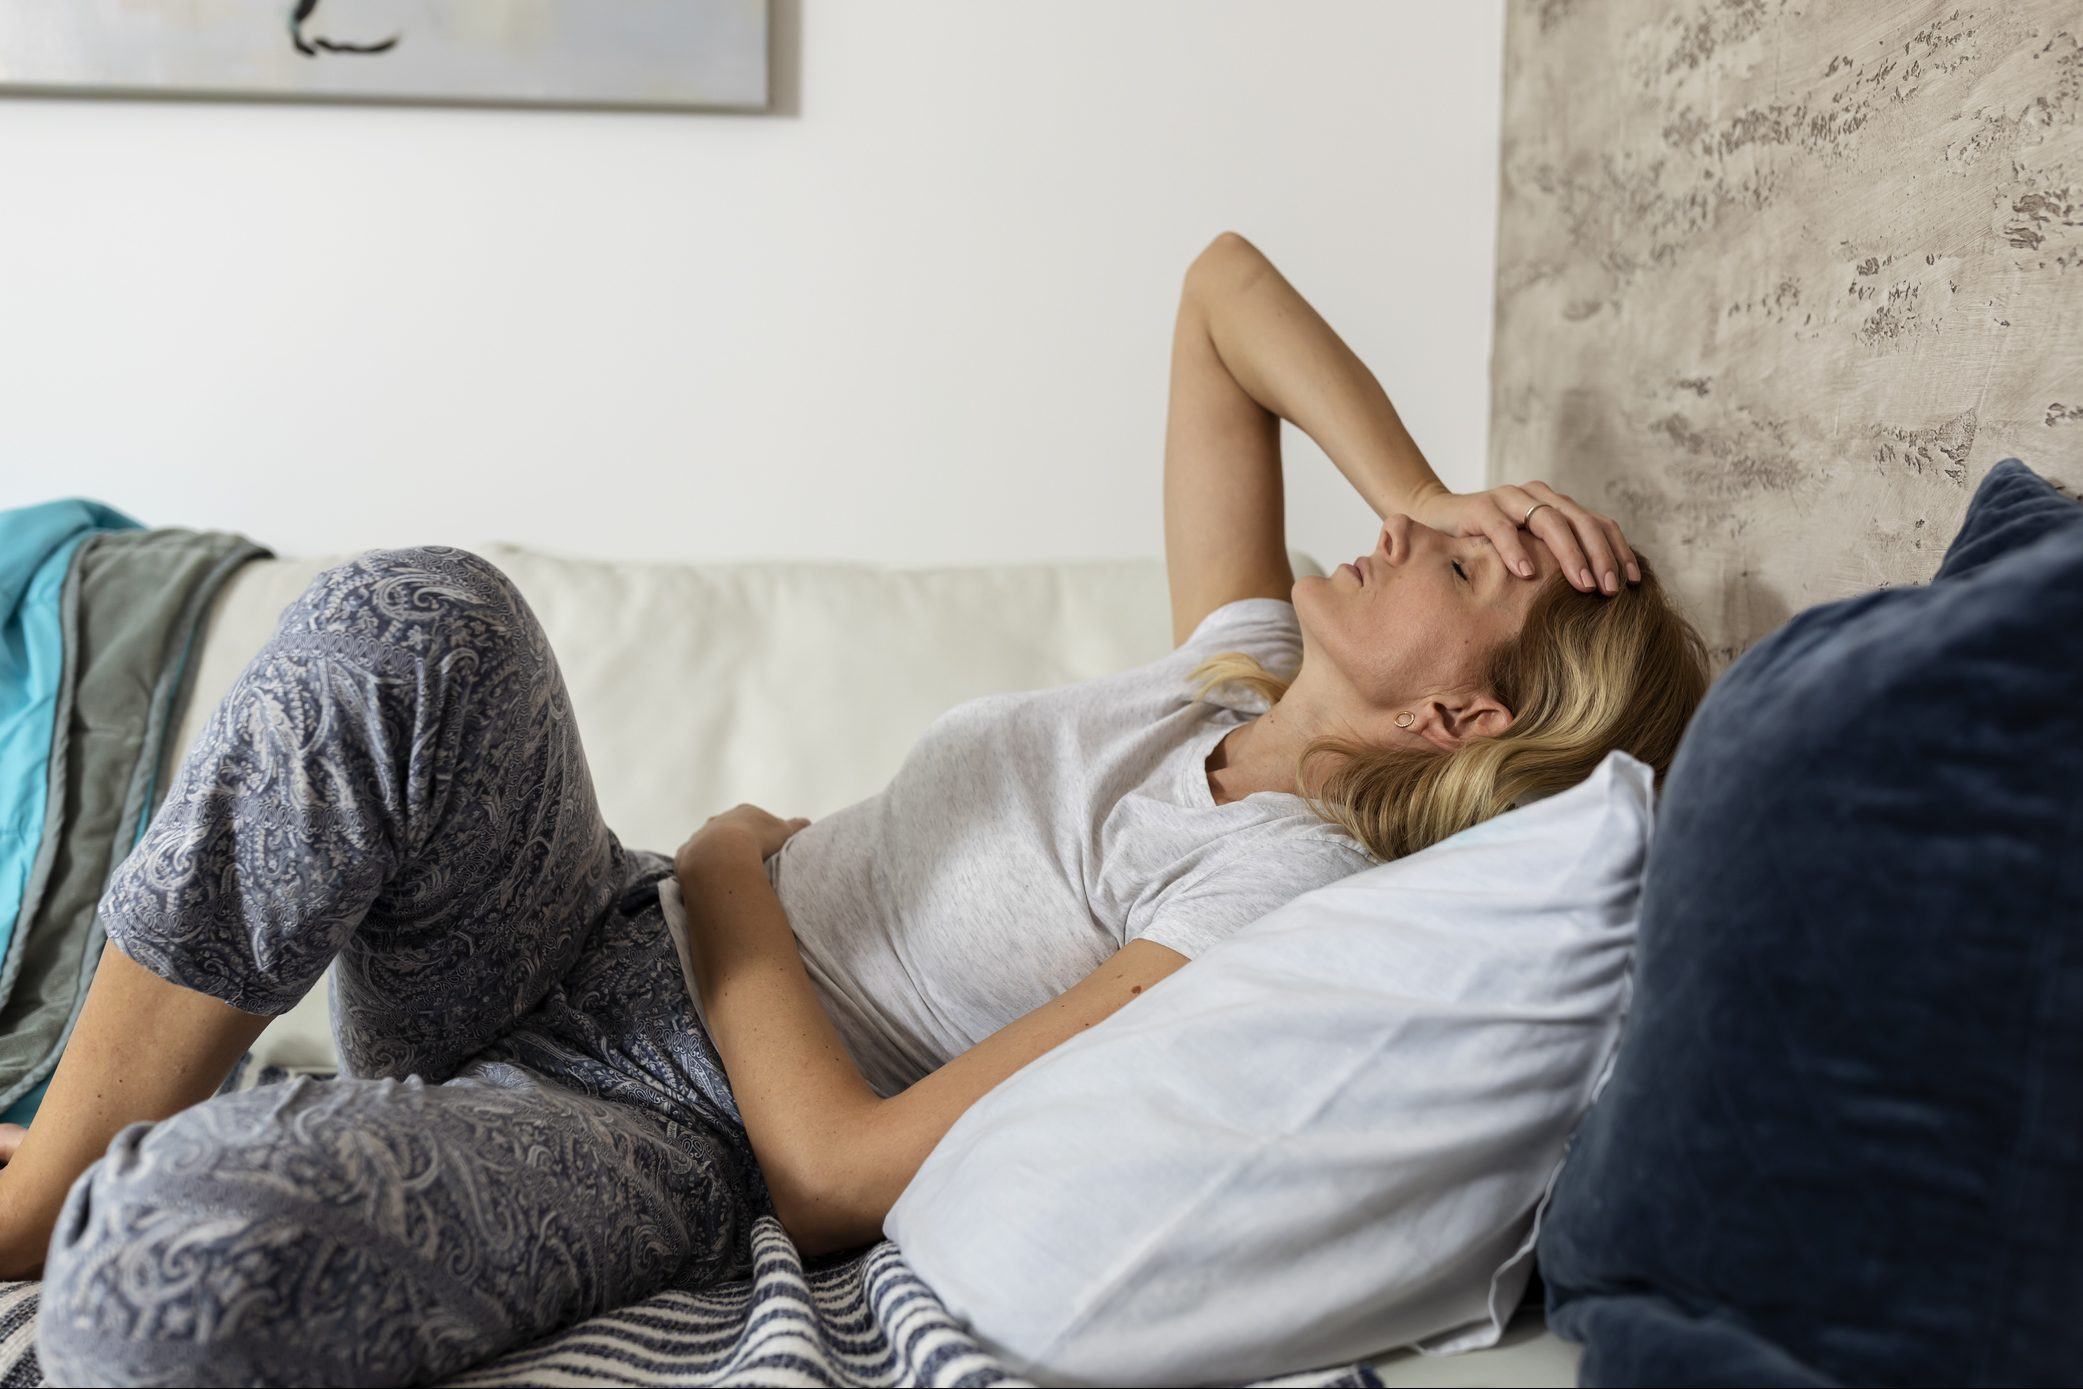 Mature woman lying on the bed suffering from stomachache and painful period cramps